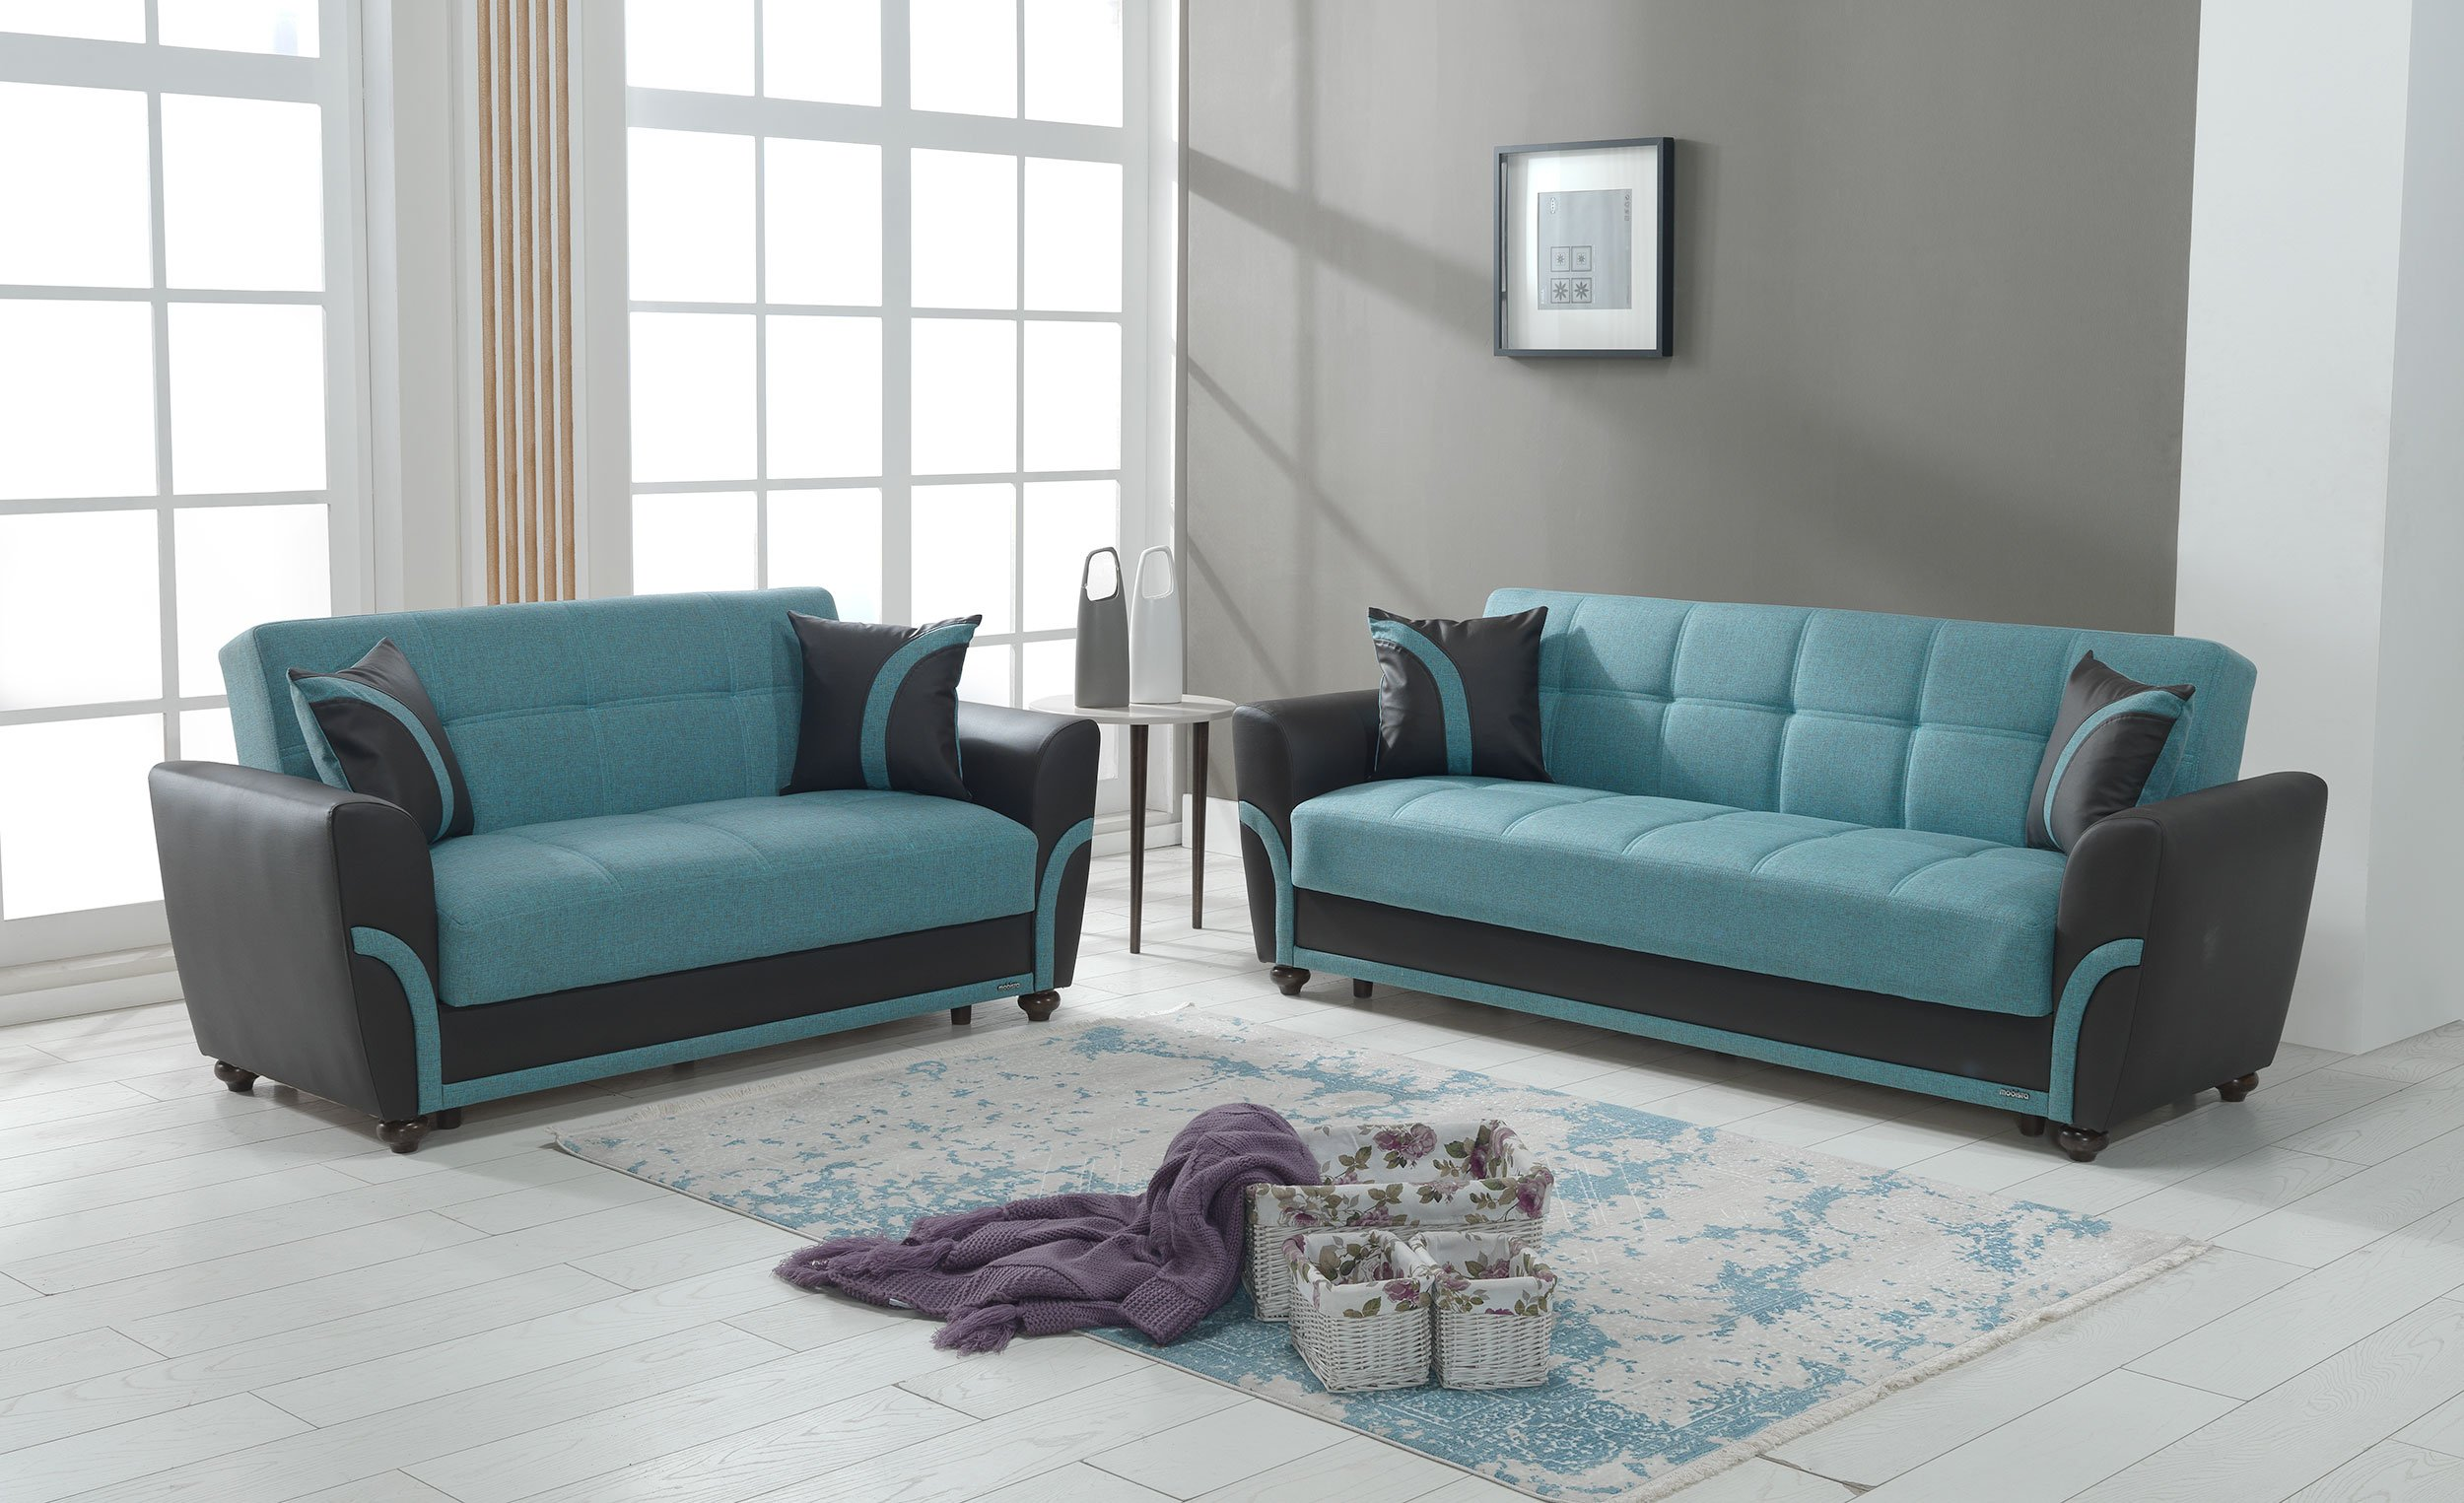 Star City Turquoise Sofa Bed by Mobista